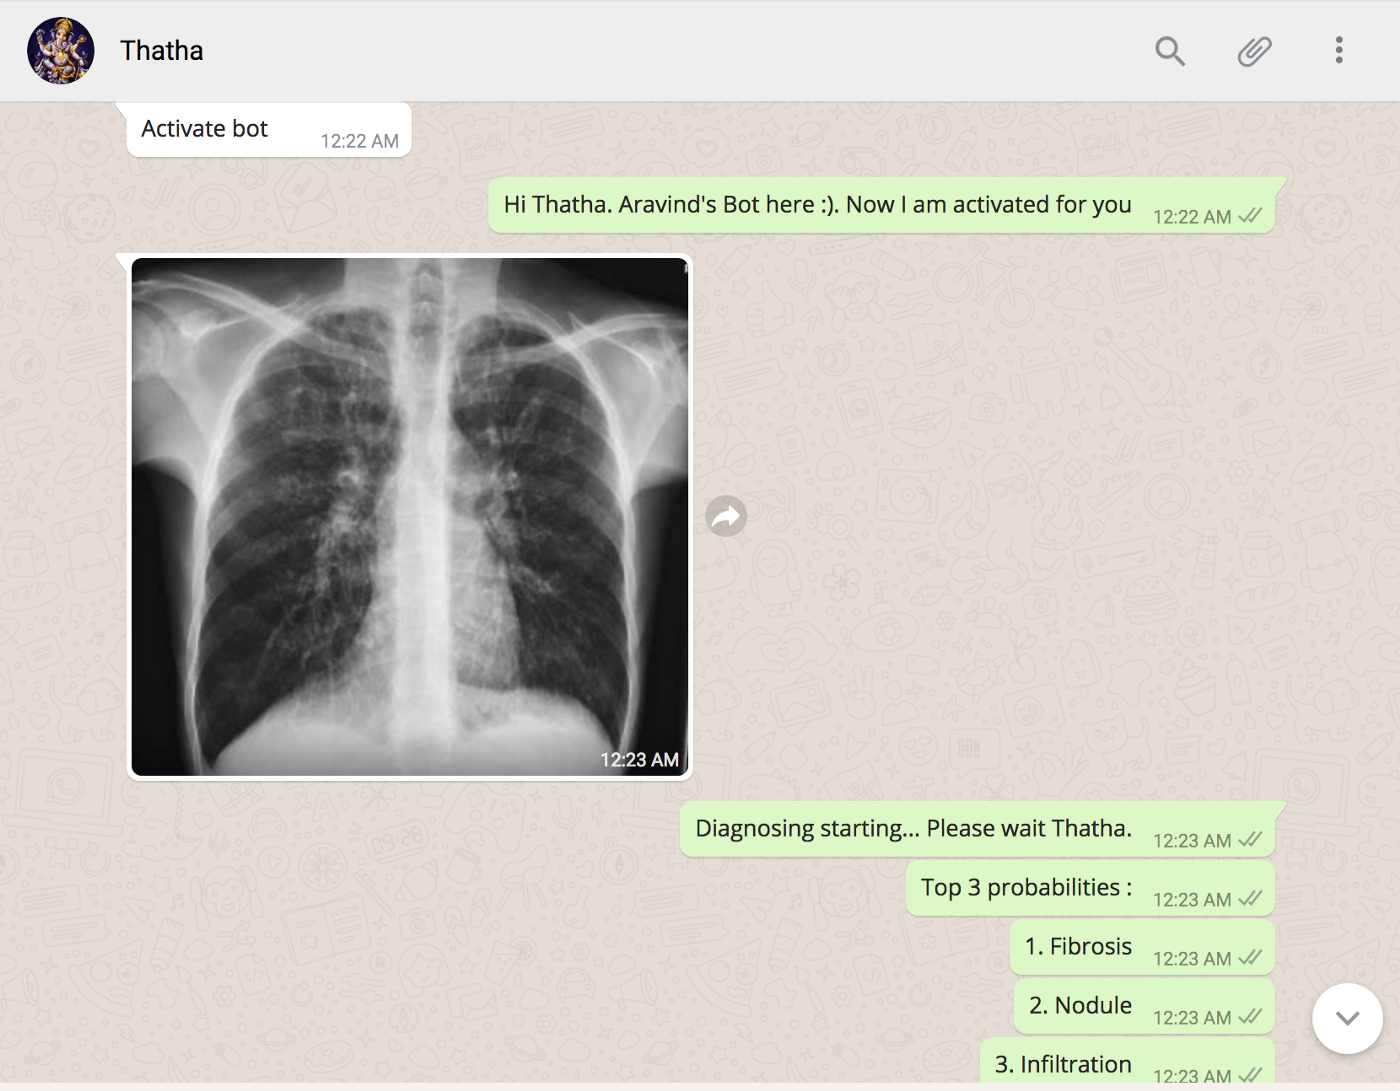 Build a basic News fetching Whatsapp bot in Python under 60 lines of